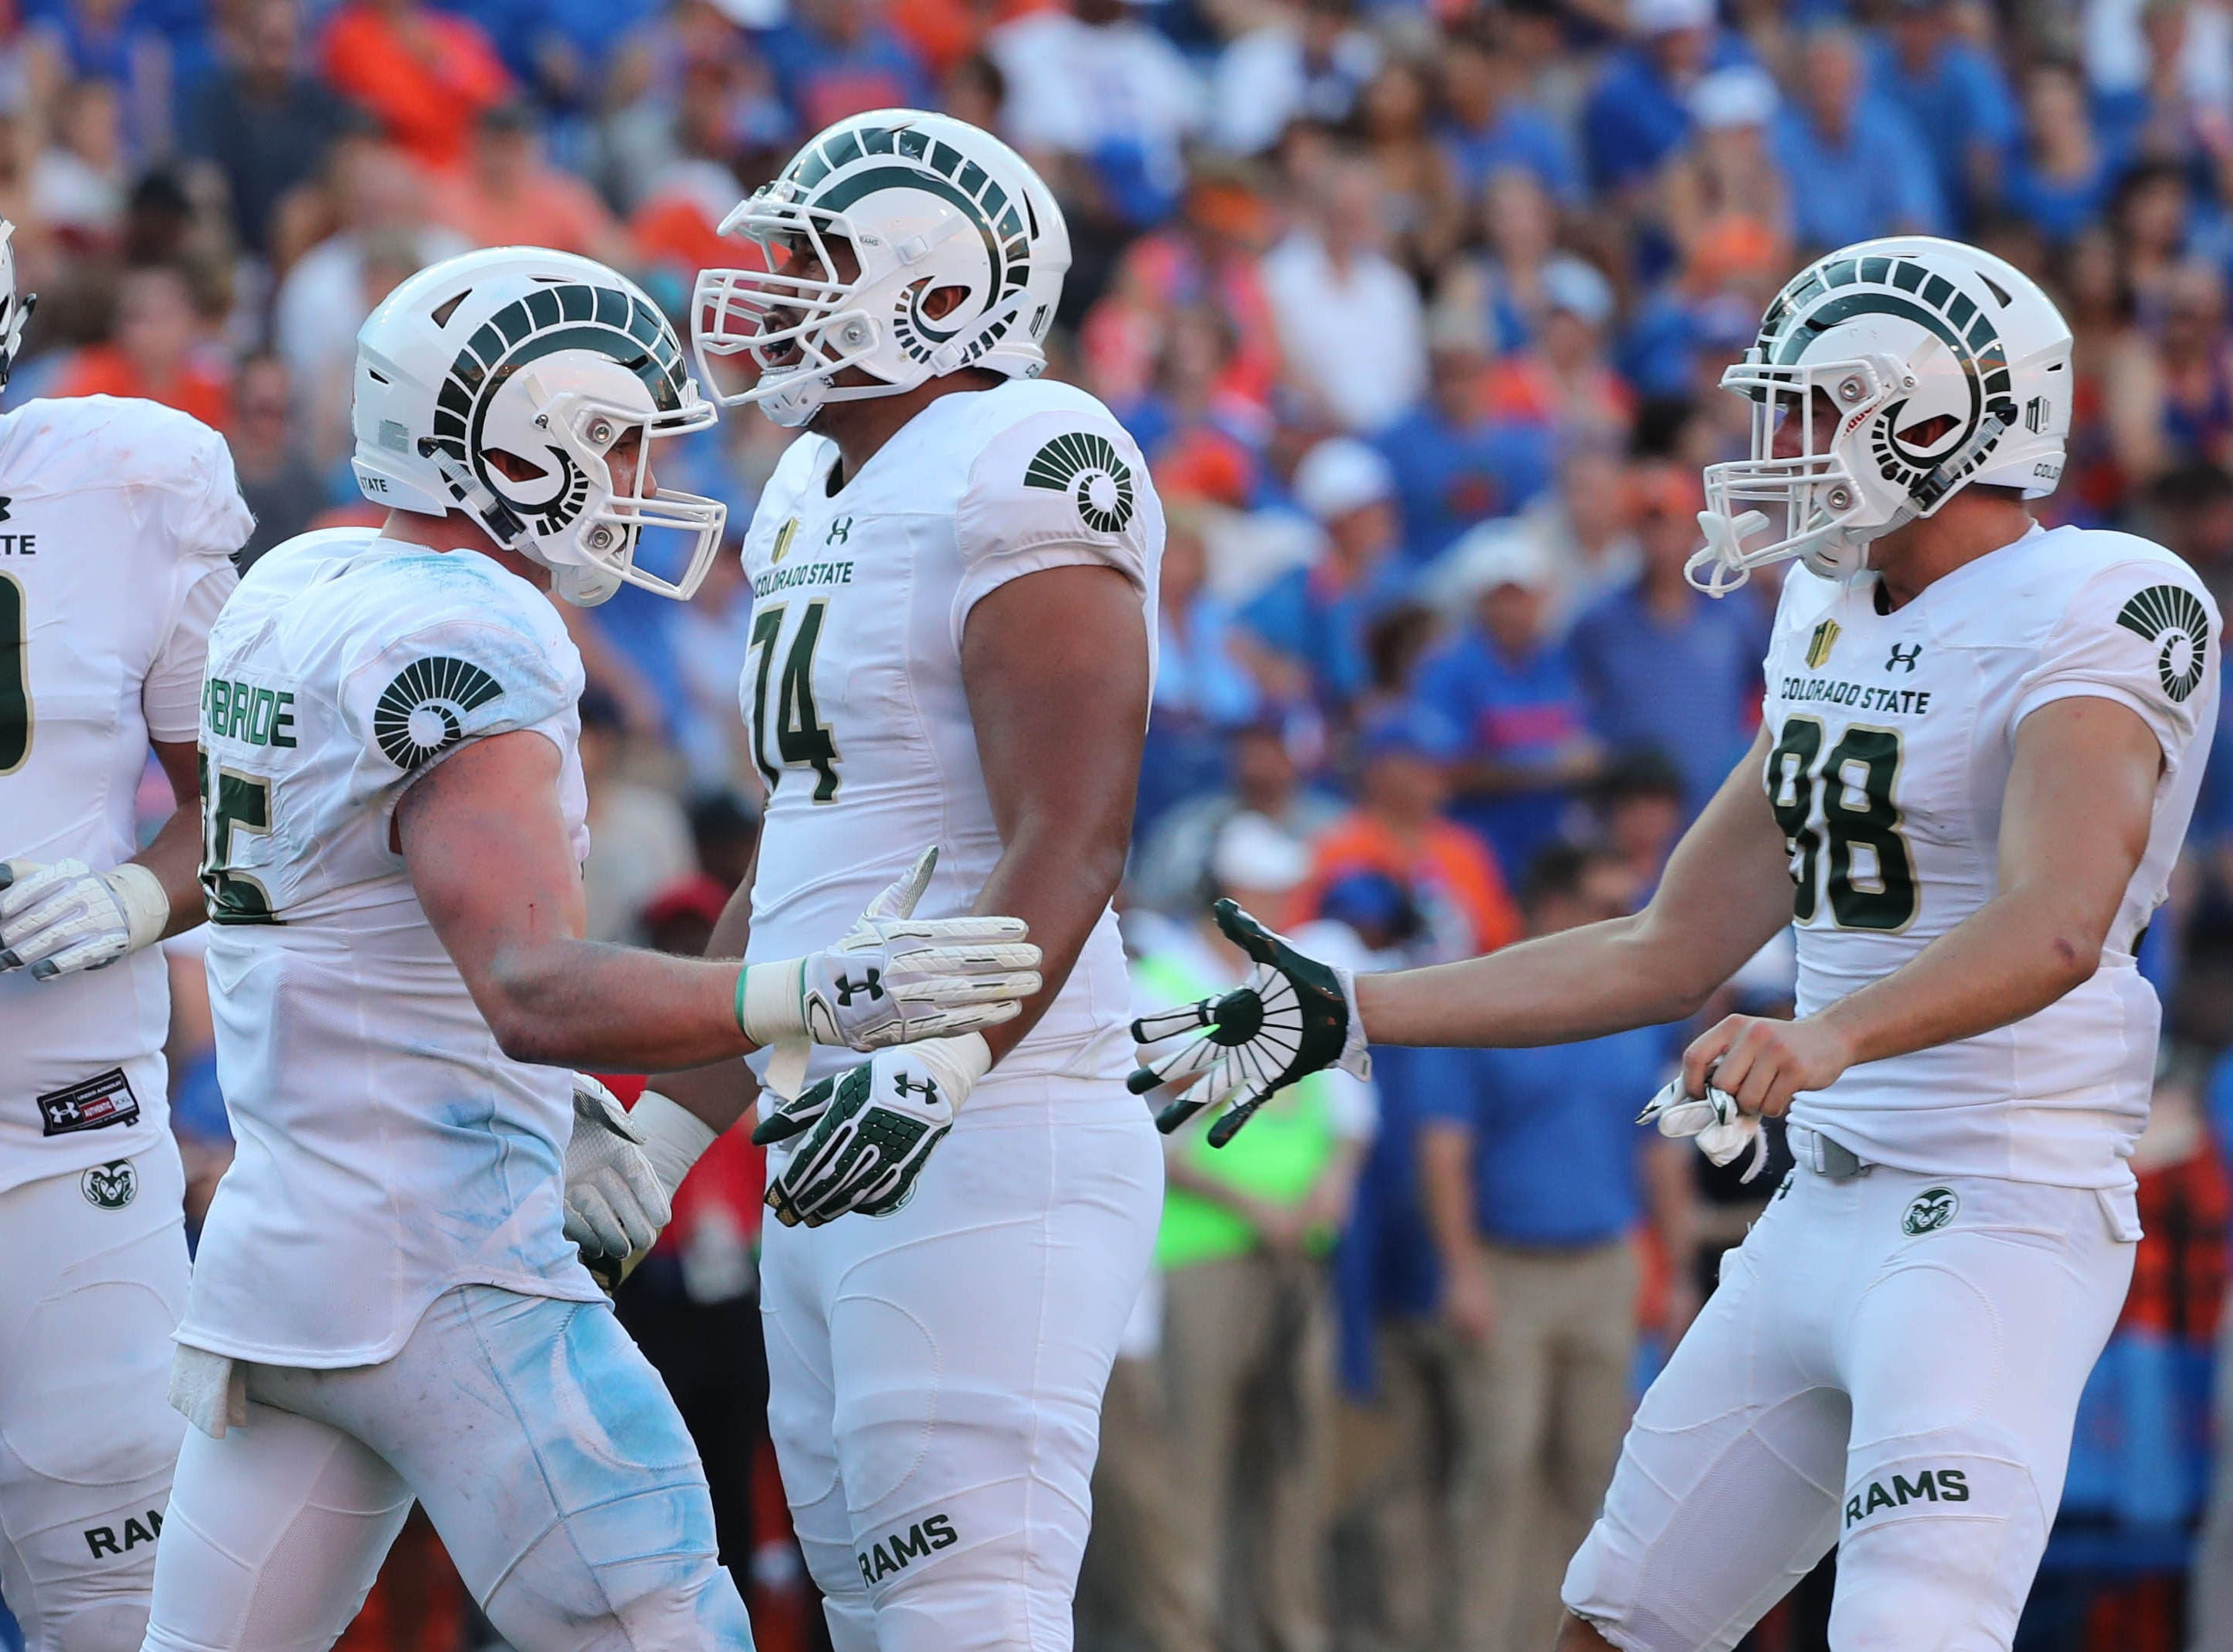 Sep 15, 2018; Gainesville, FL, USA; Colorado State Rams tight end Trey McBride (85) is congratulated as he scores a touchdown during the second half at Ben Hill Griffin Stadium. Mandatory Credit: Kim Klement-USA TODAY Sports